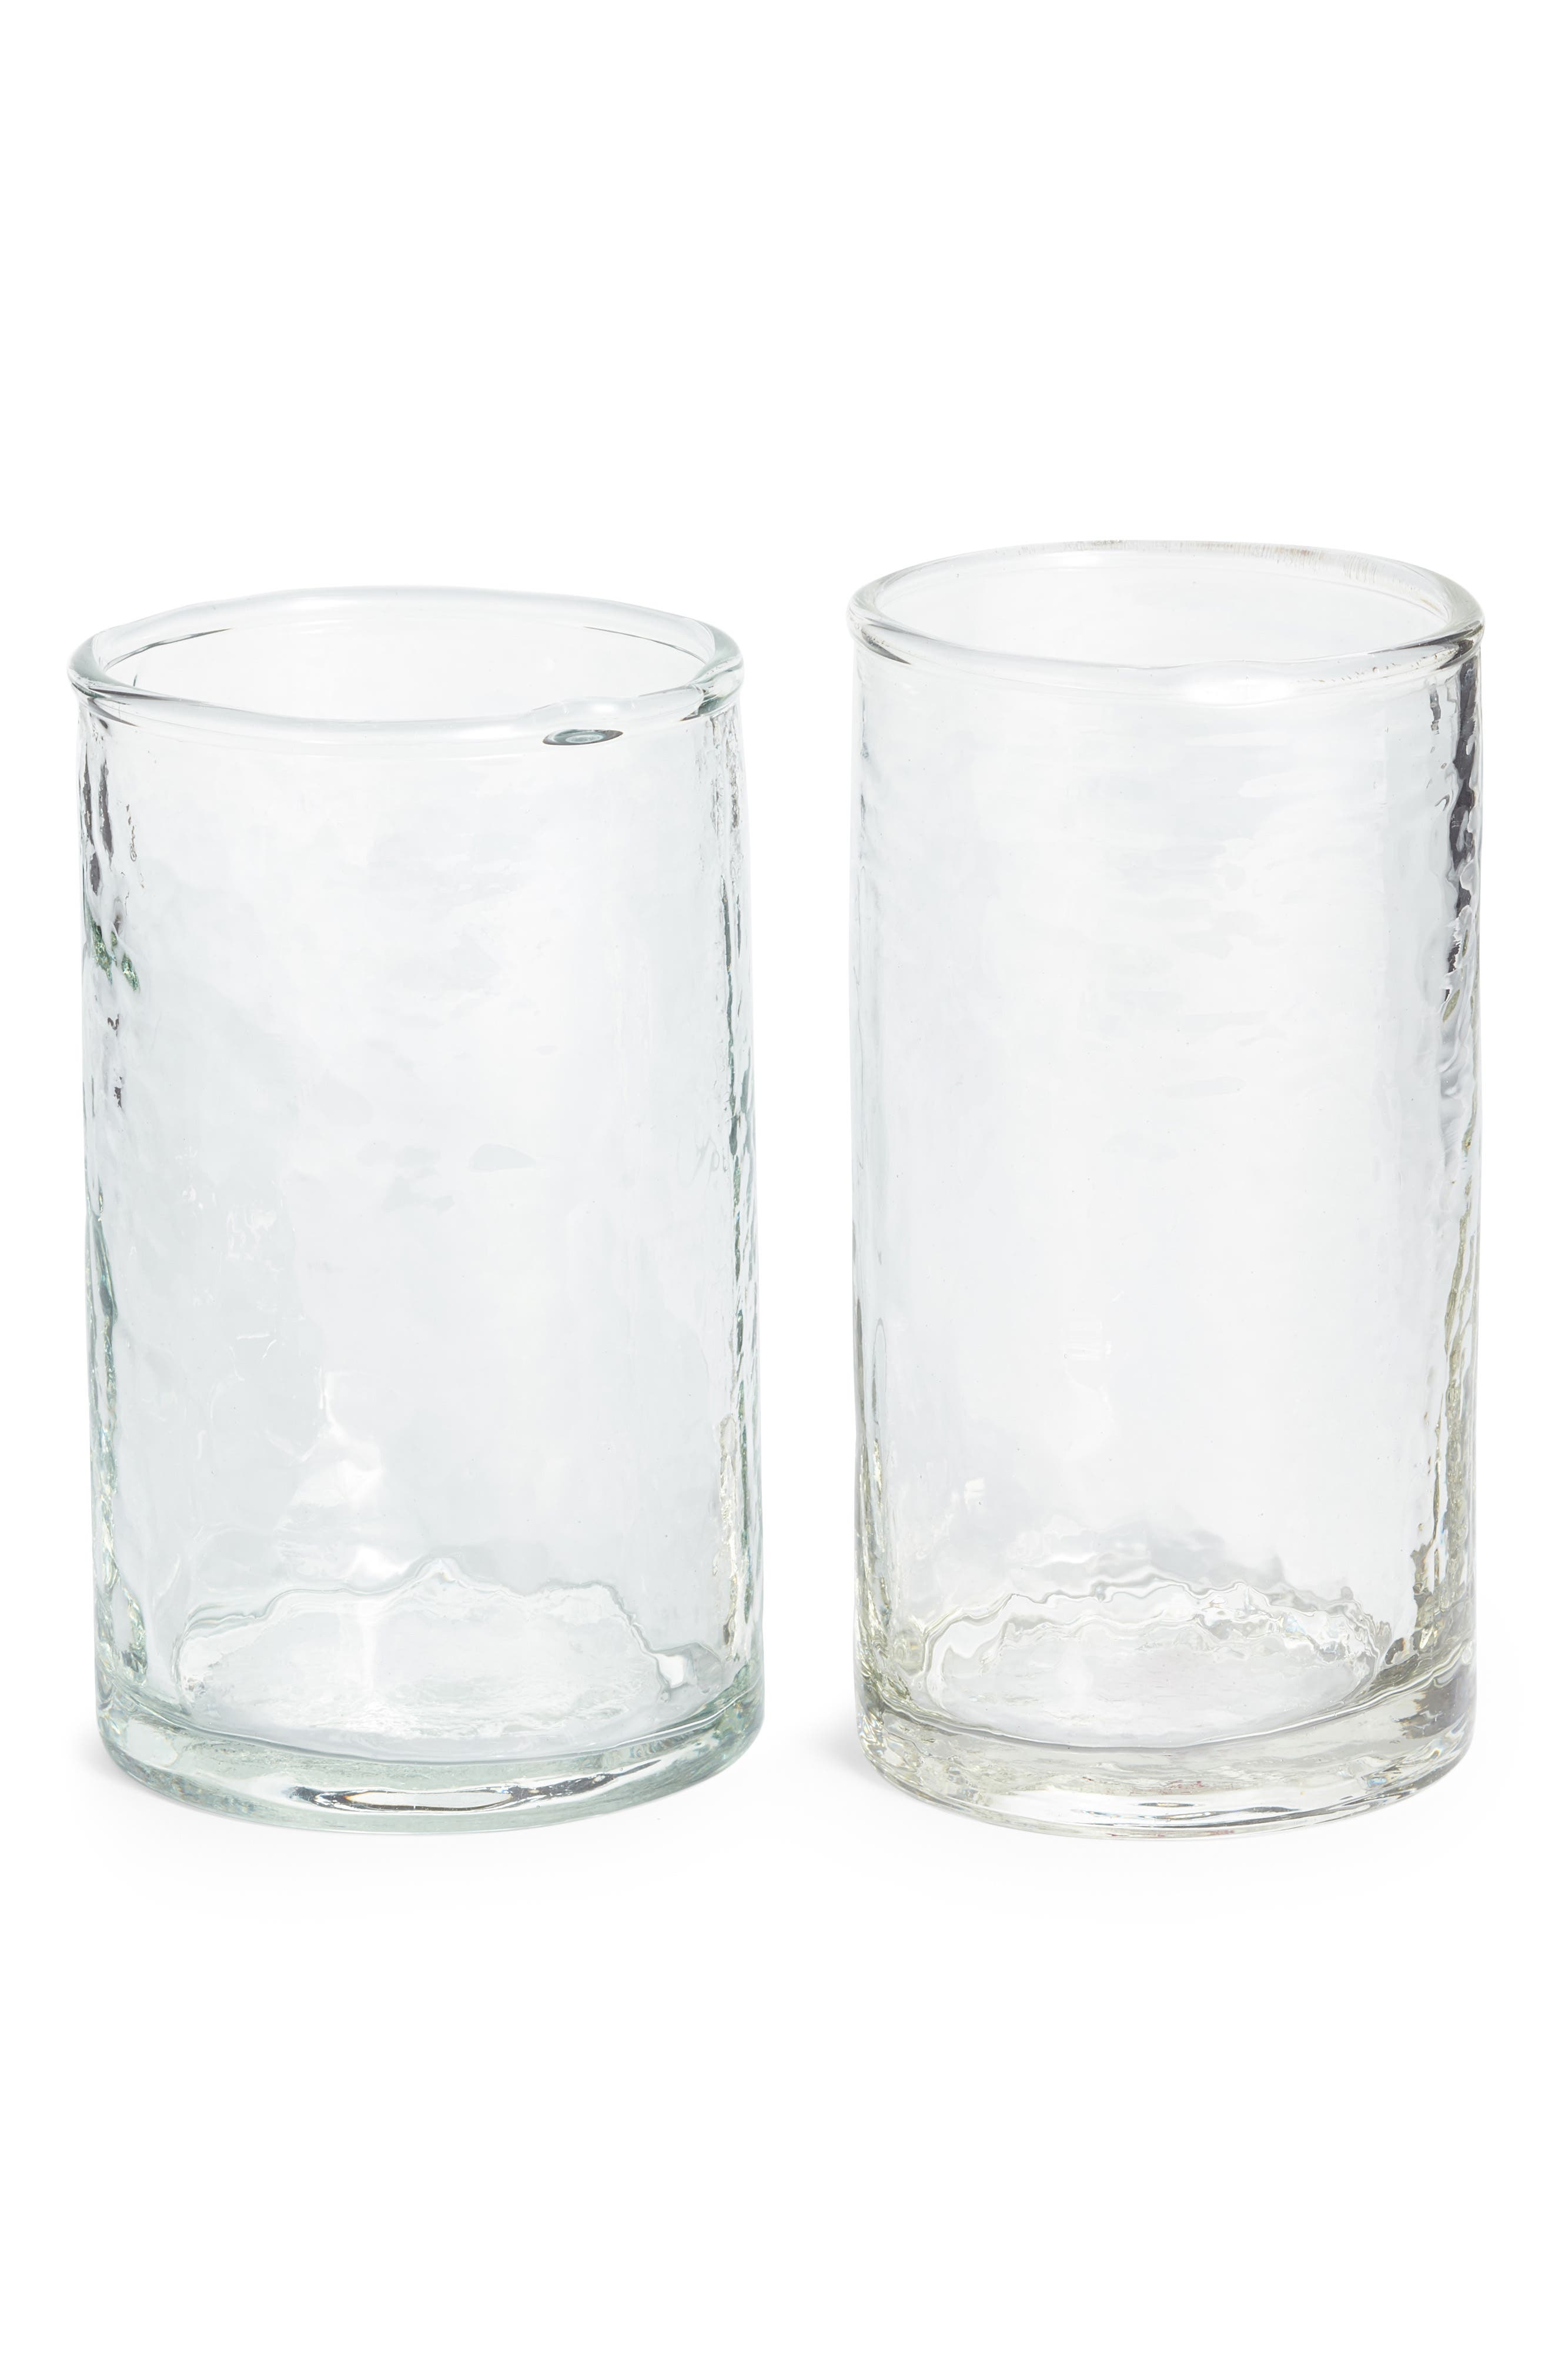 Set of Two Hammered Short Glasses,                             Main thumbnail 1, color,                             960